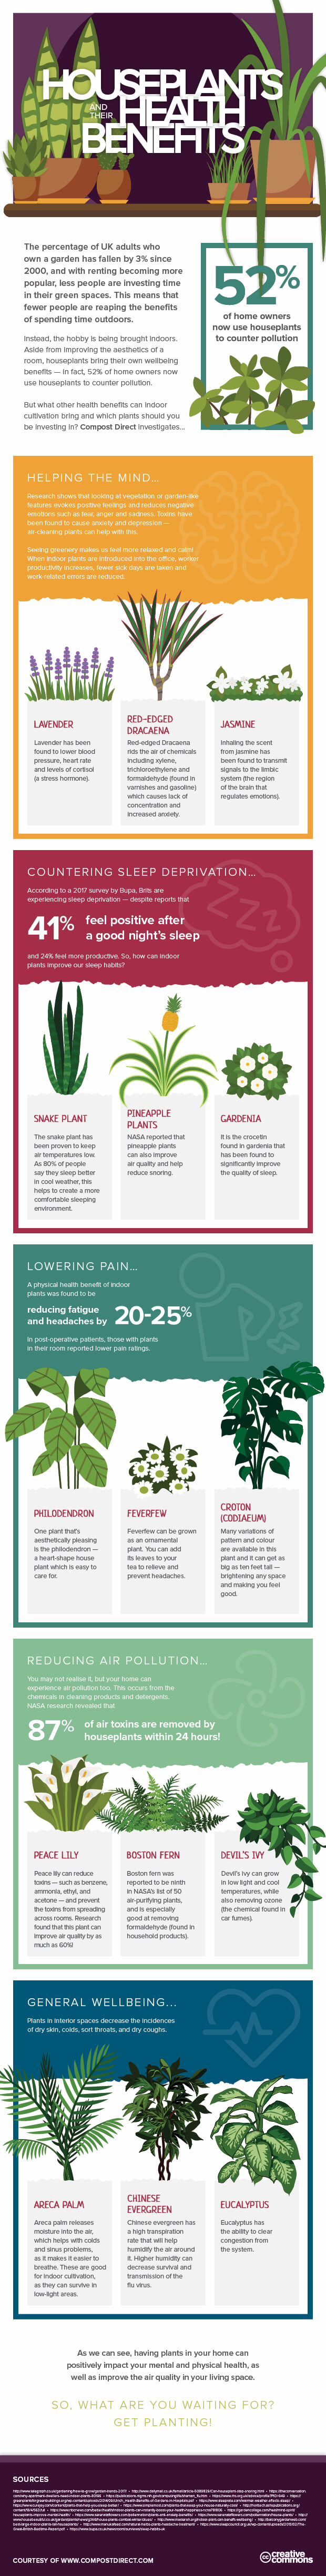 health benefits house plants